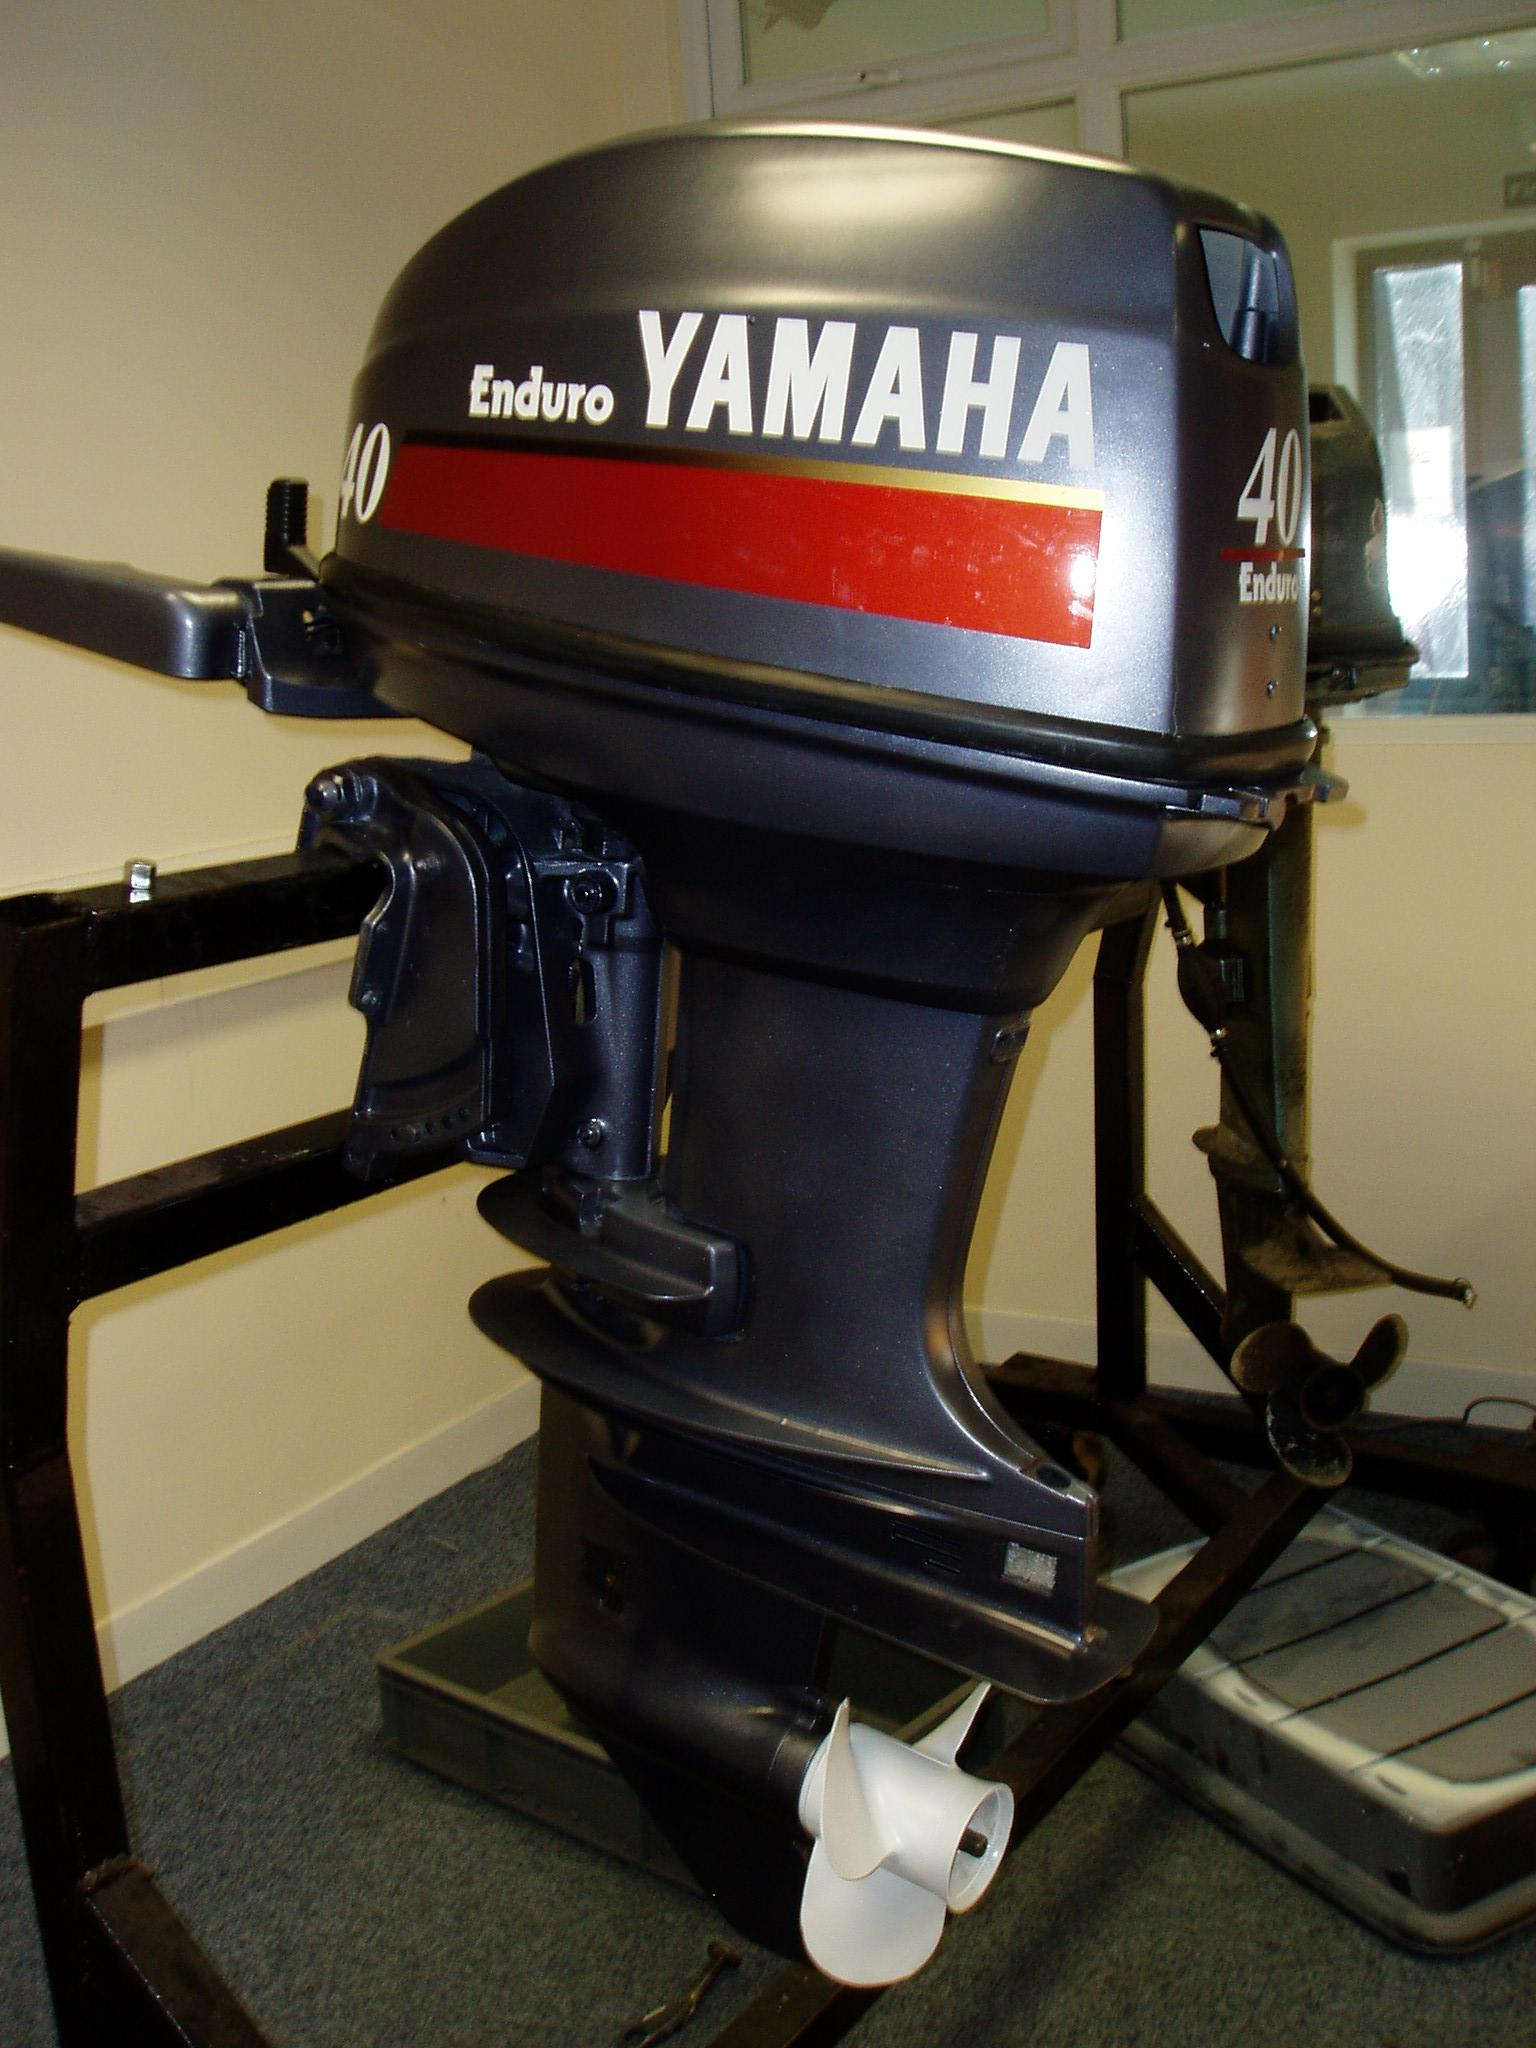 Quality refurbished outboard engines for sale - AMS